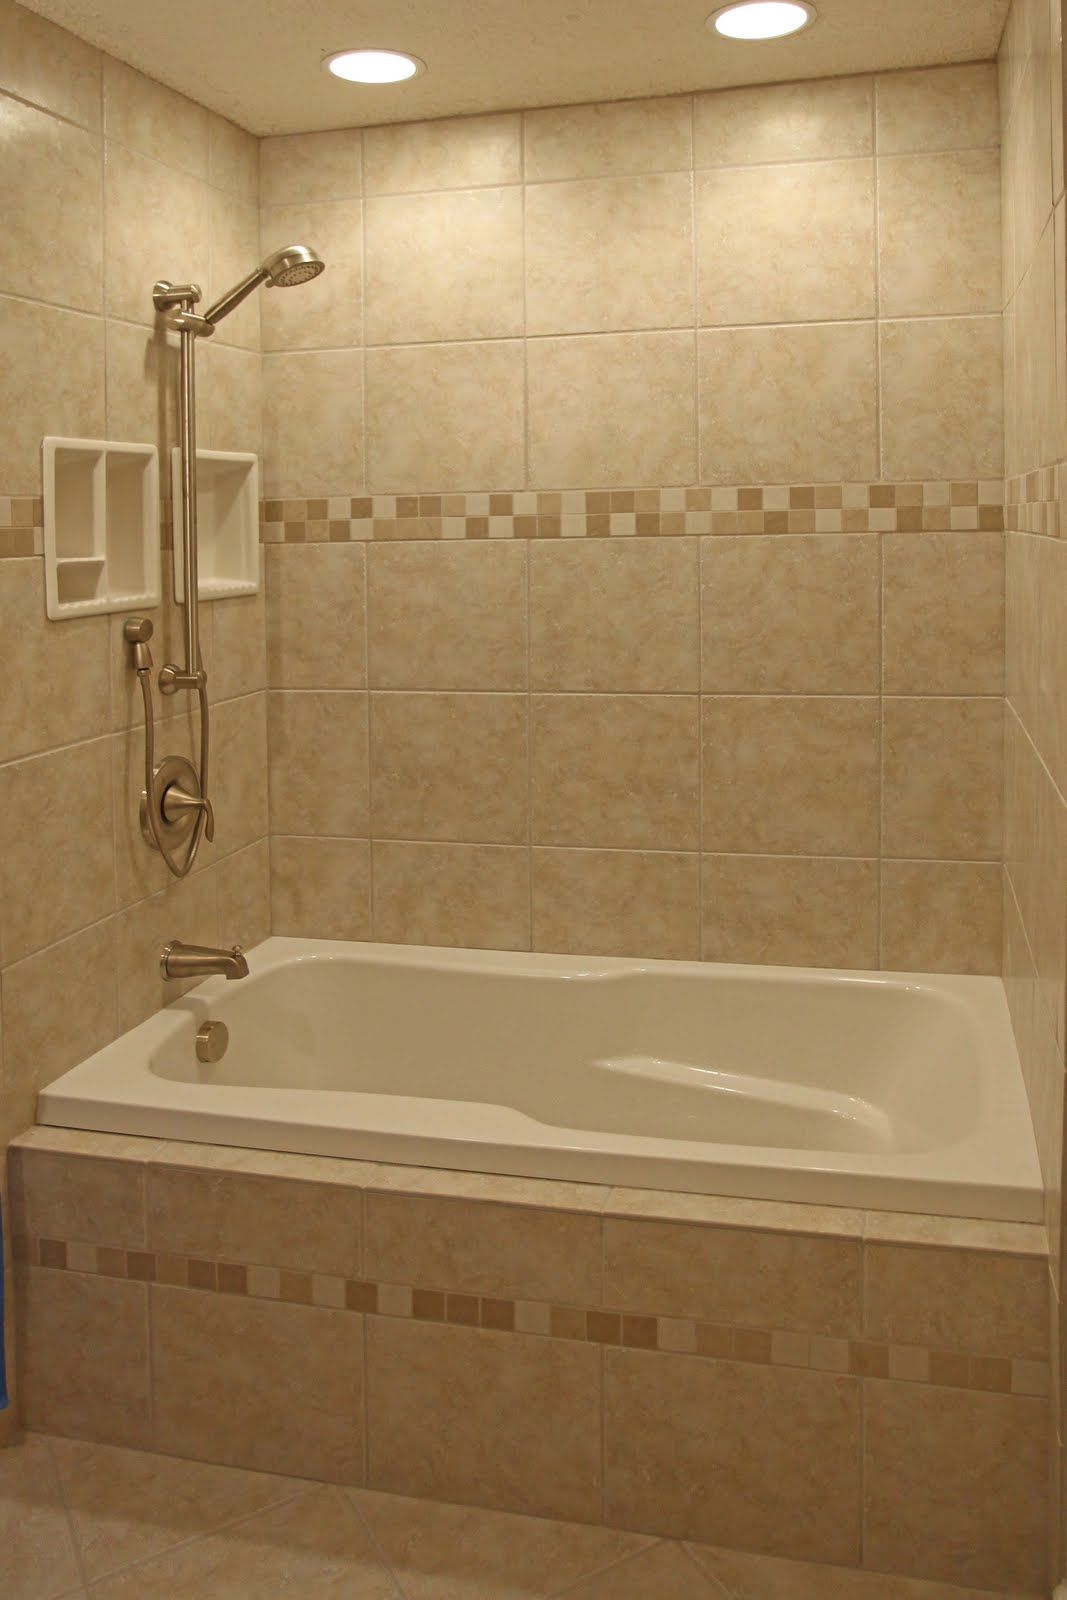 Small Bathroom Design Ideas With Tub beautiful example of spa tub w/ shower. i really like the idea of